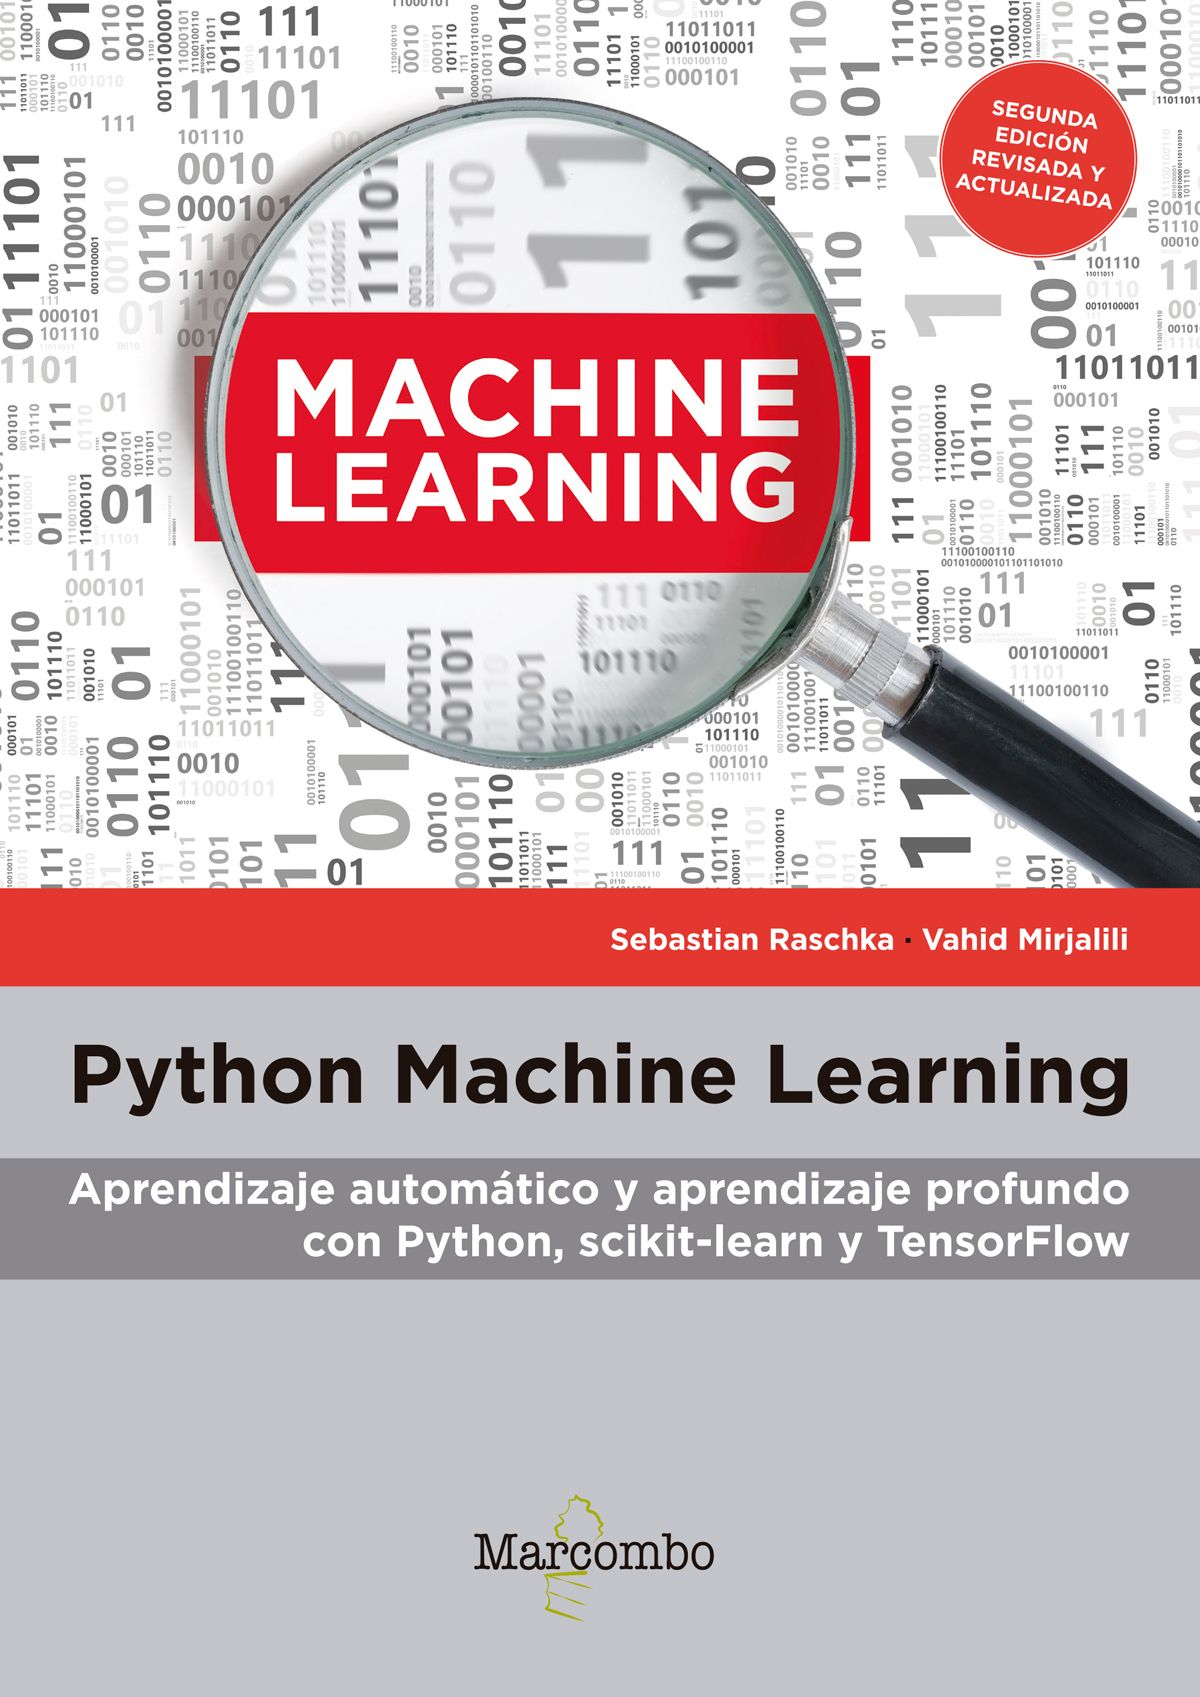 Python machine learning. 9788426727206